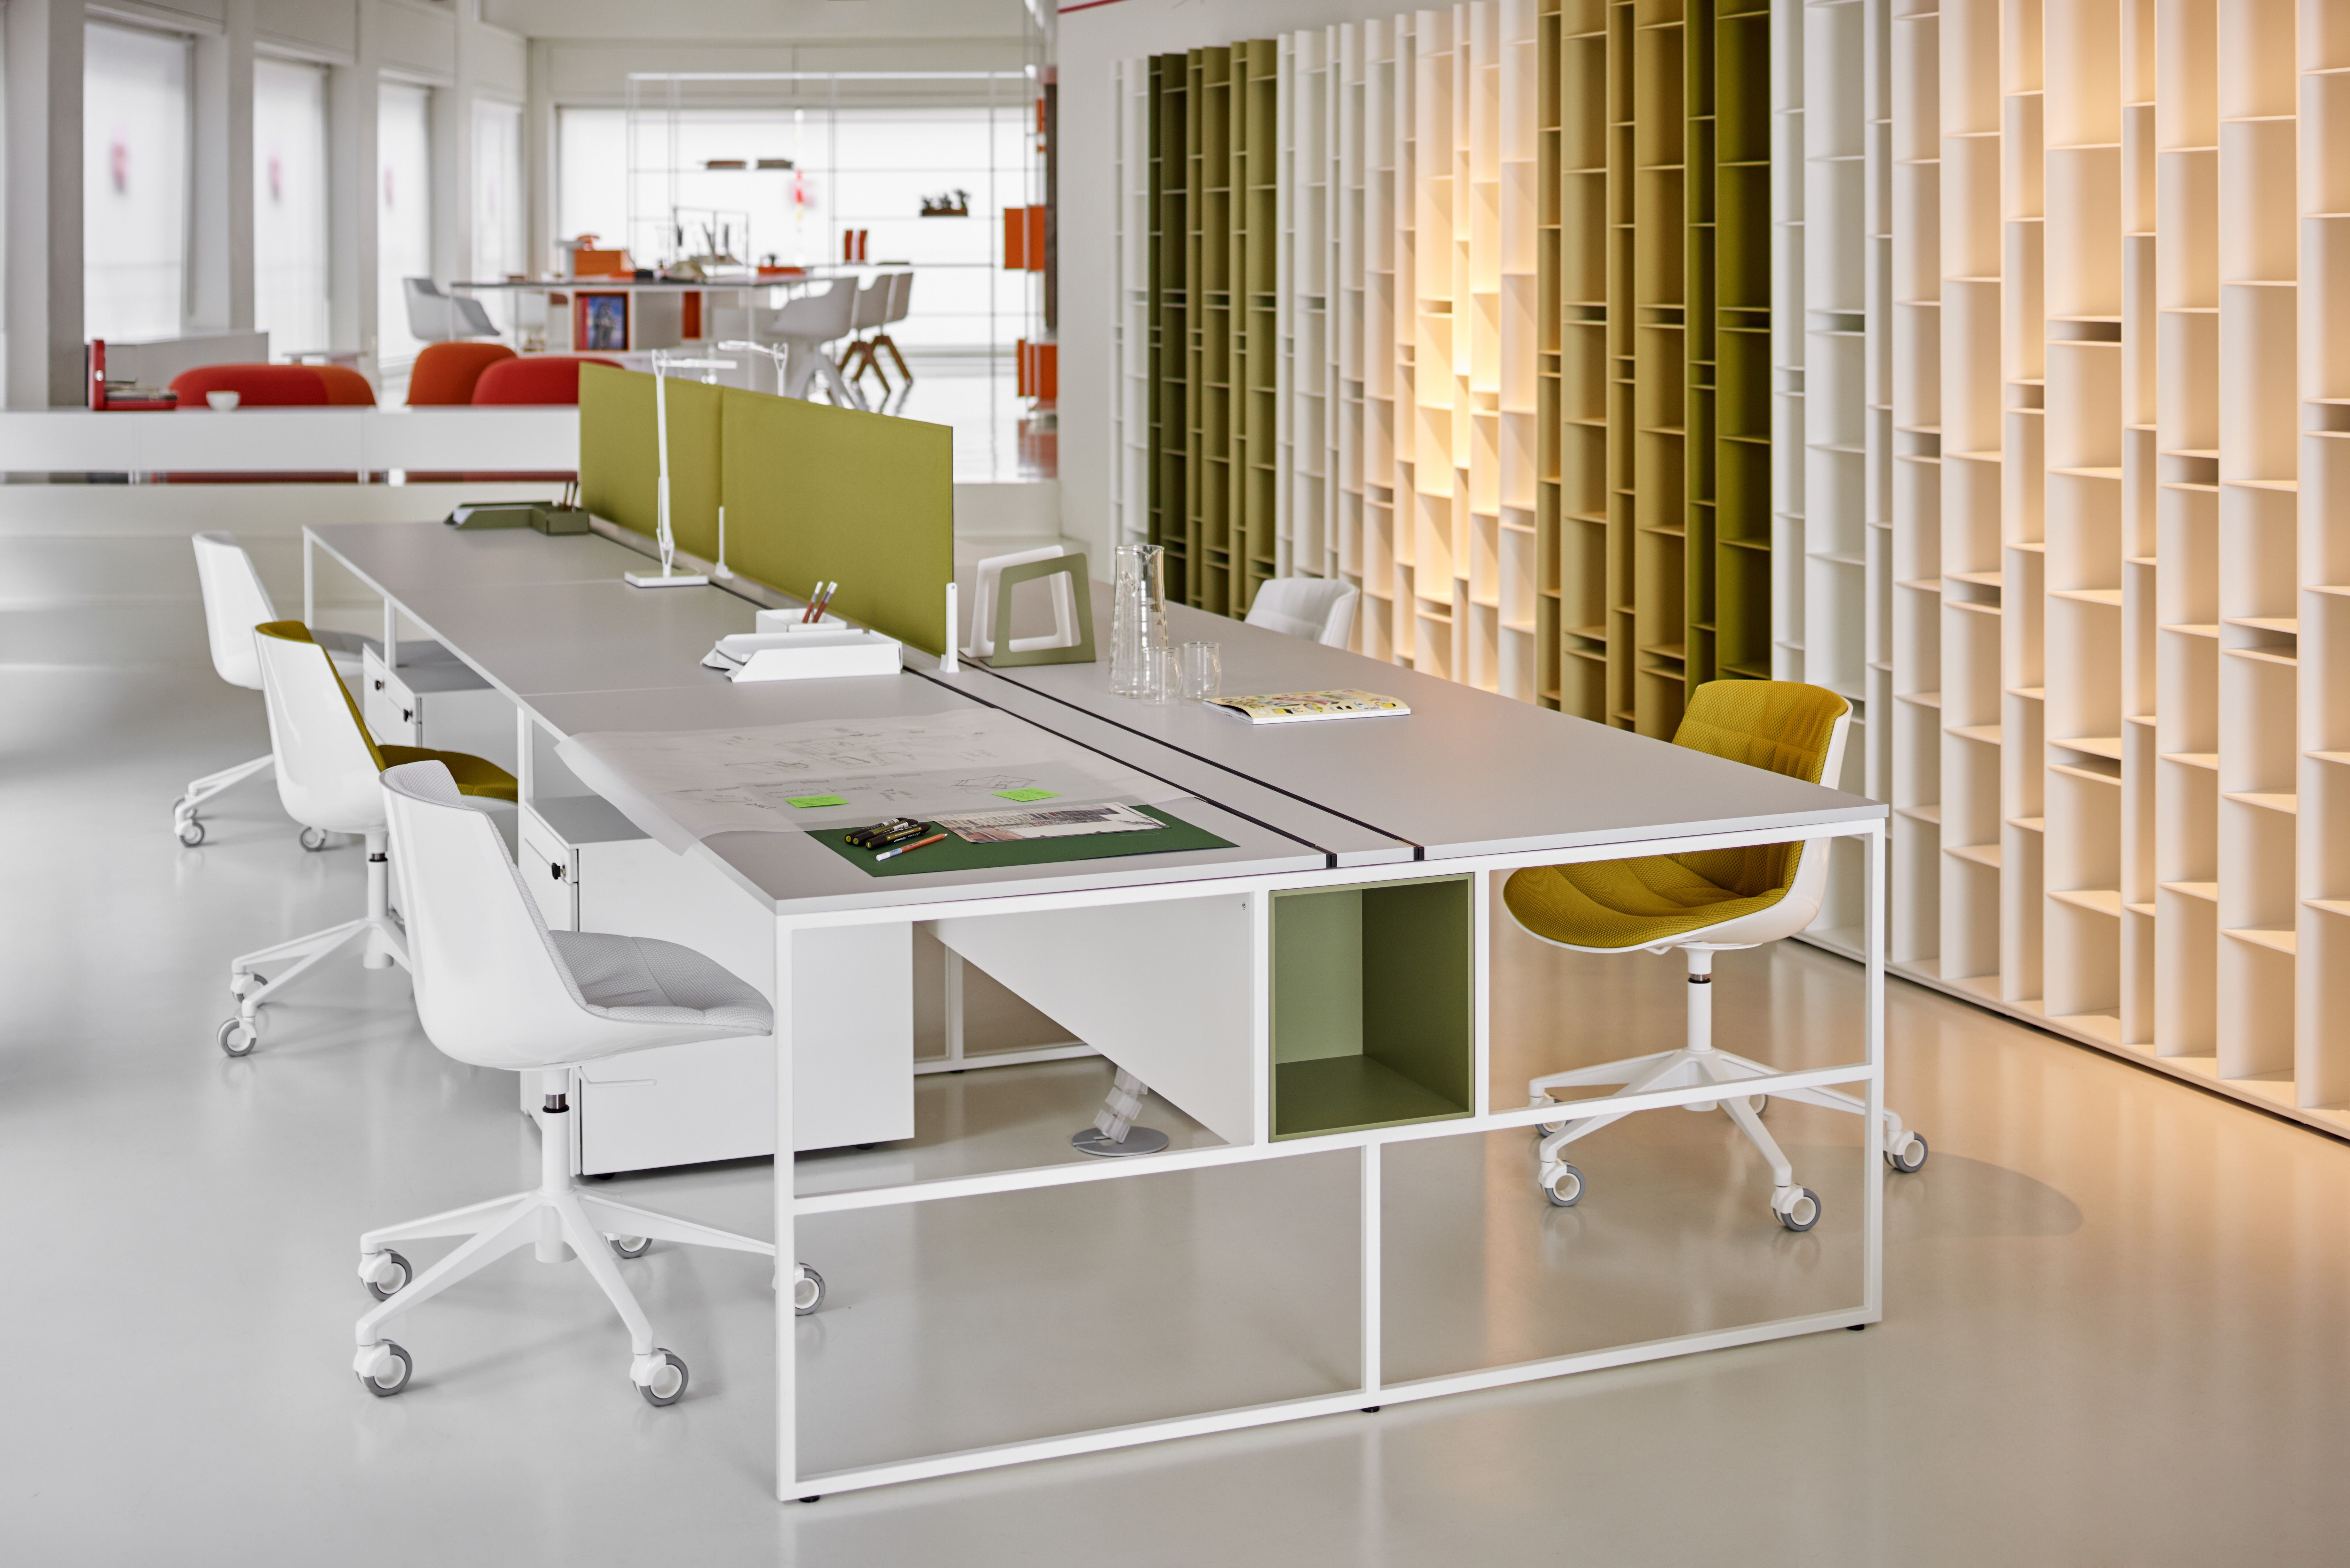 office athlete desk furniture desksmall gensler c e interesting and locations google design hotel phone chairs corner reception front home drop bow of featuring intriguing number contemporary myoffice b designs resort f small desks search size full